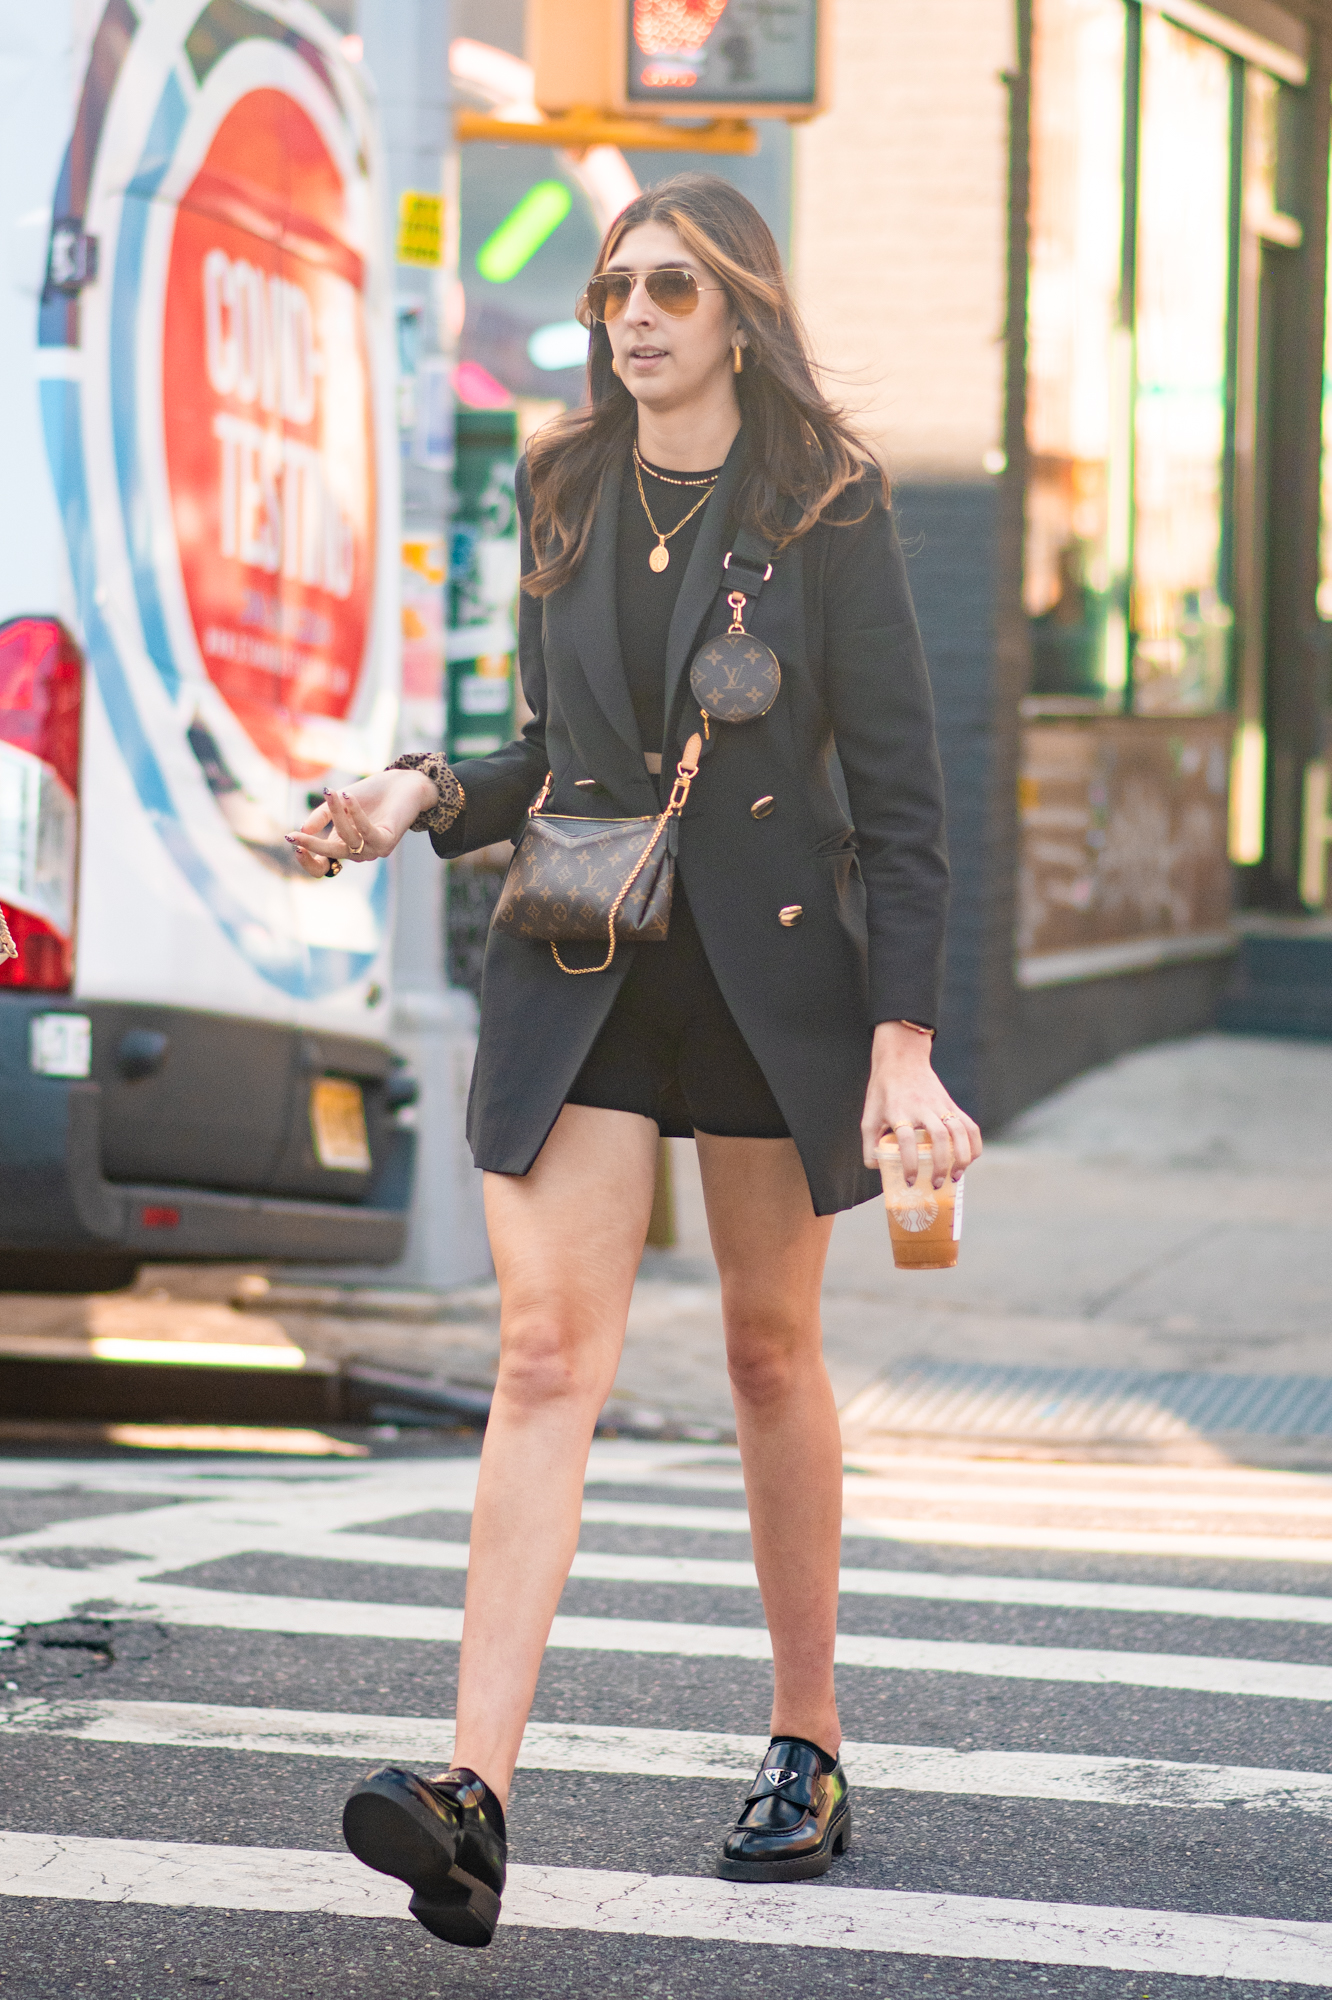 NYC street style fall outfit idea - woman wearing blazer outfit with Louis Vuitton purse set - Karya Schanilec NYC fashion photographer